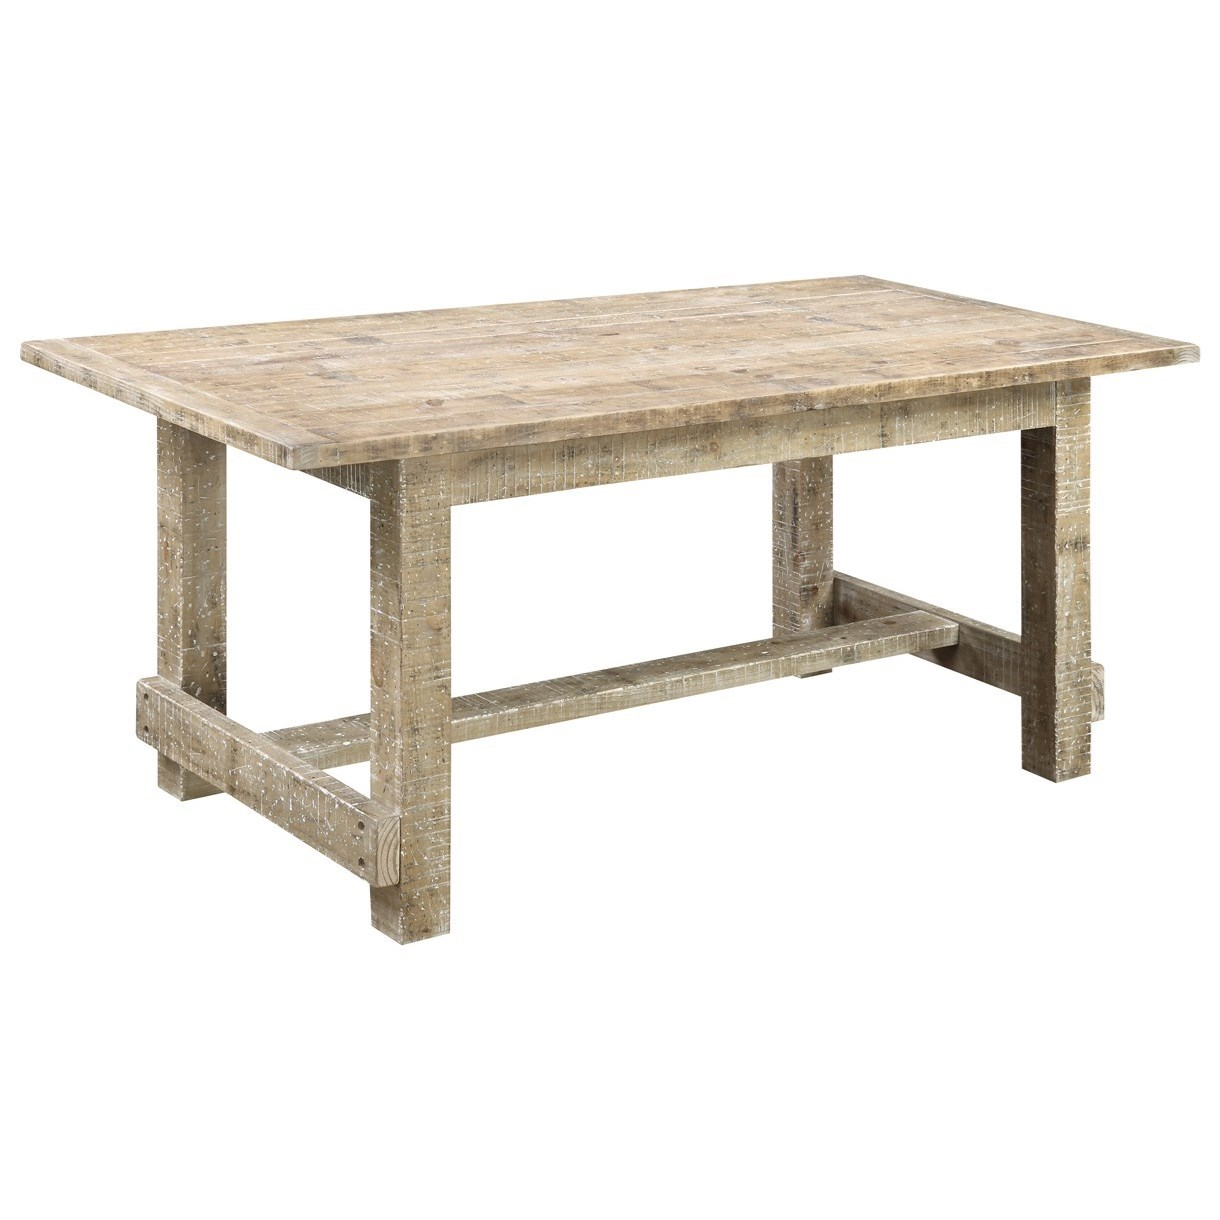 Interlude Gathering Table by Emerald at Northeast Factory Direct